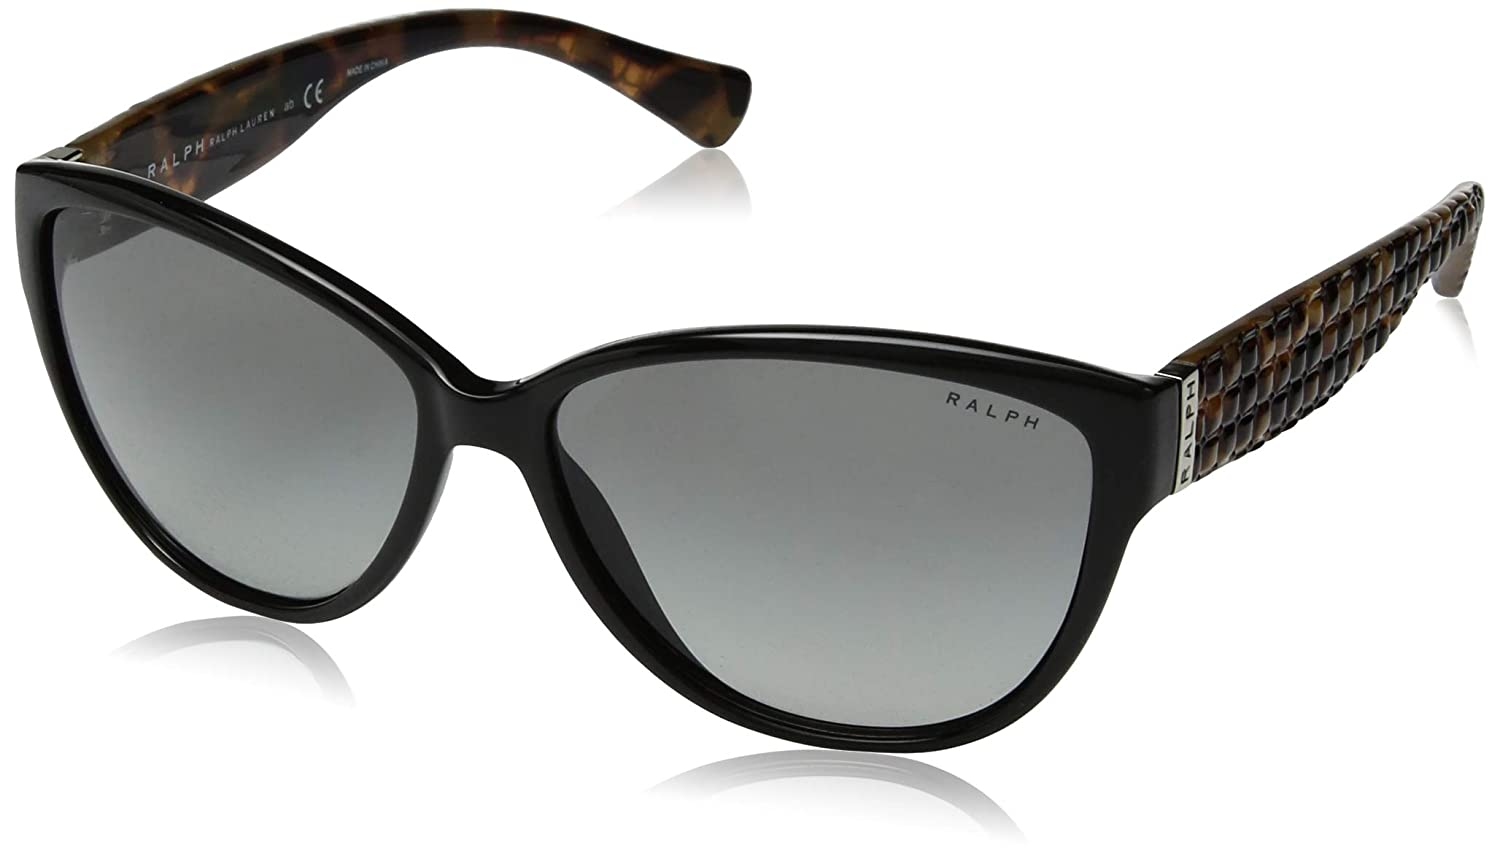 Ralph by Ralph Lauren Women's 0ra5176 Cateye Sunglasses, Black, 58.0 mm